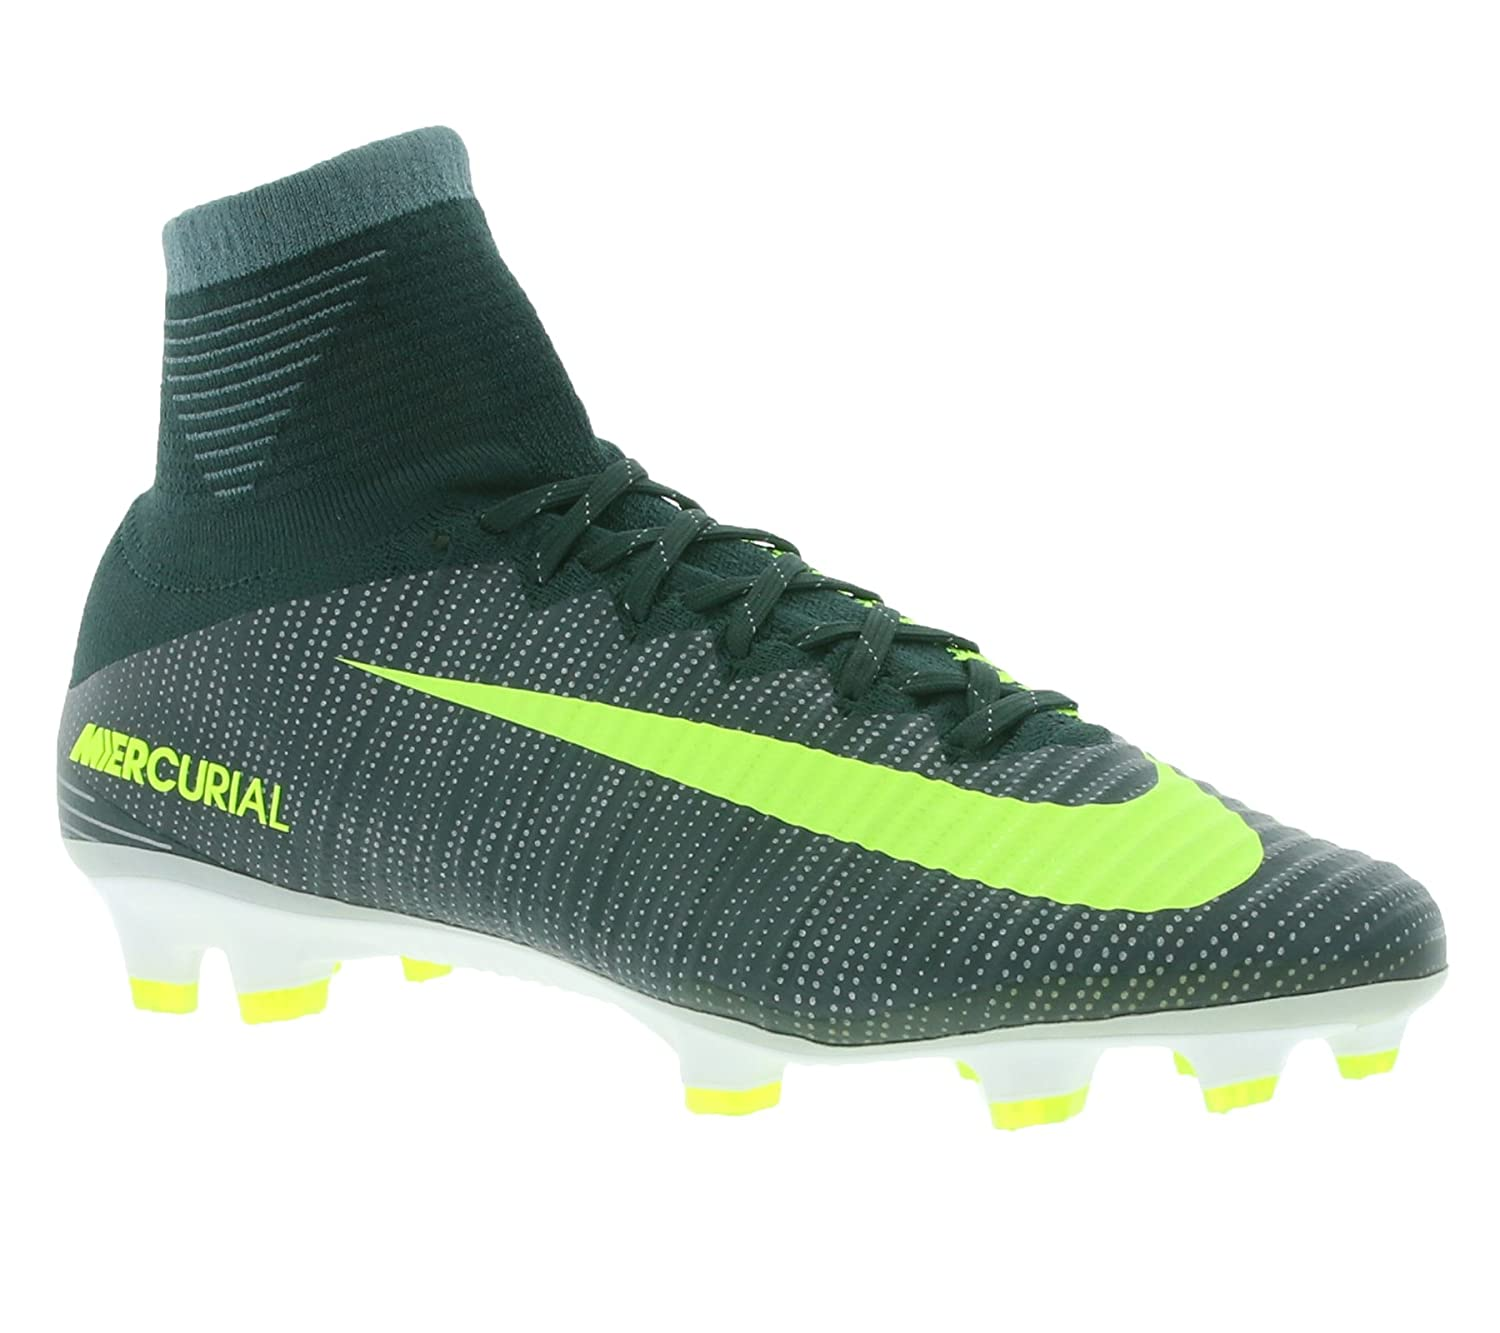 9d81b3898 Nike Mercurial Superfly V CR7 Firm Ground Cleats  SEAWEED  (6.5)   Amazon.ca  Shoes   Handbags